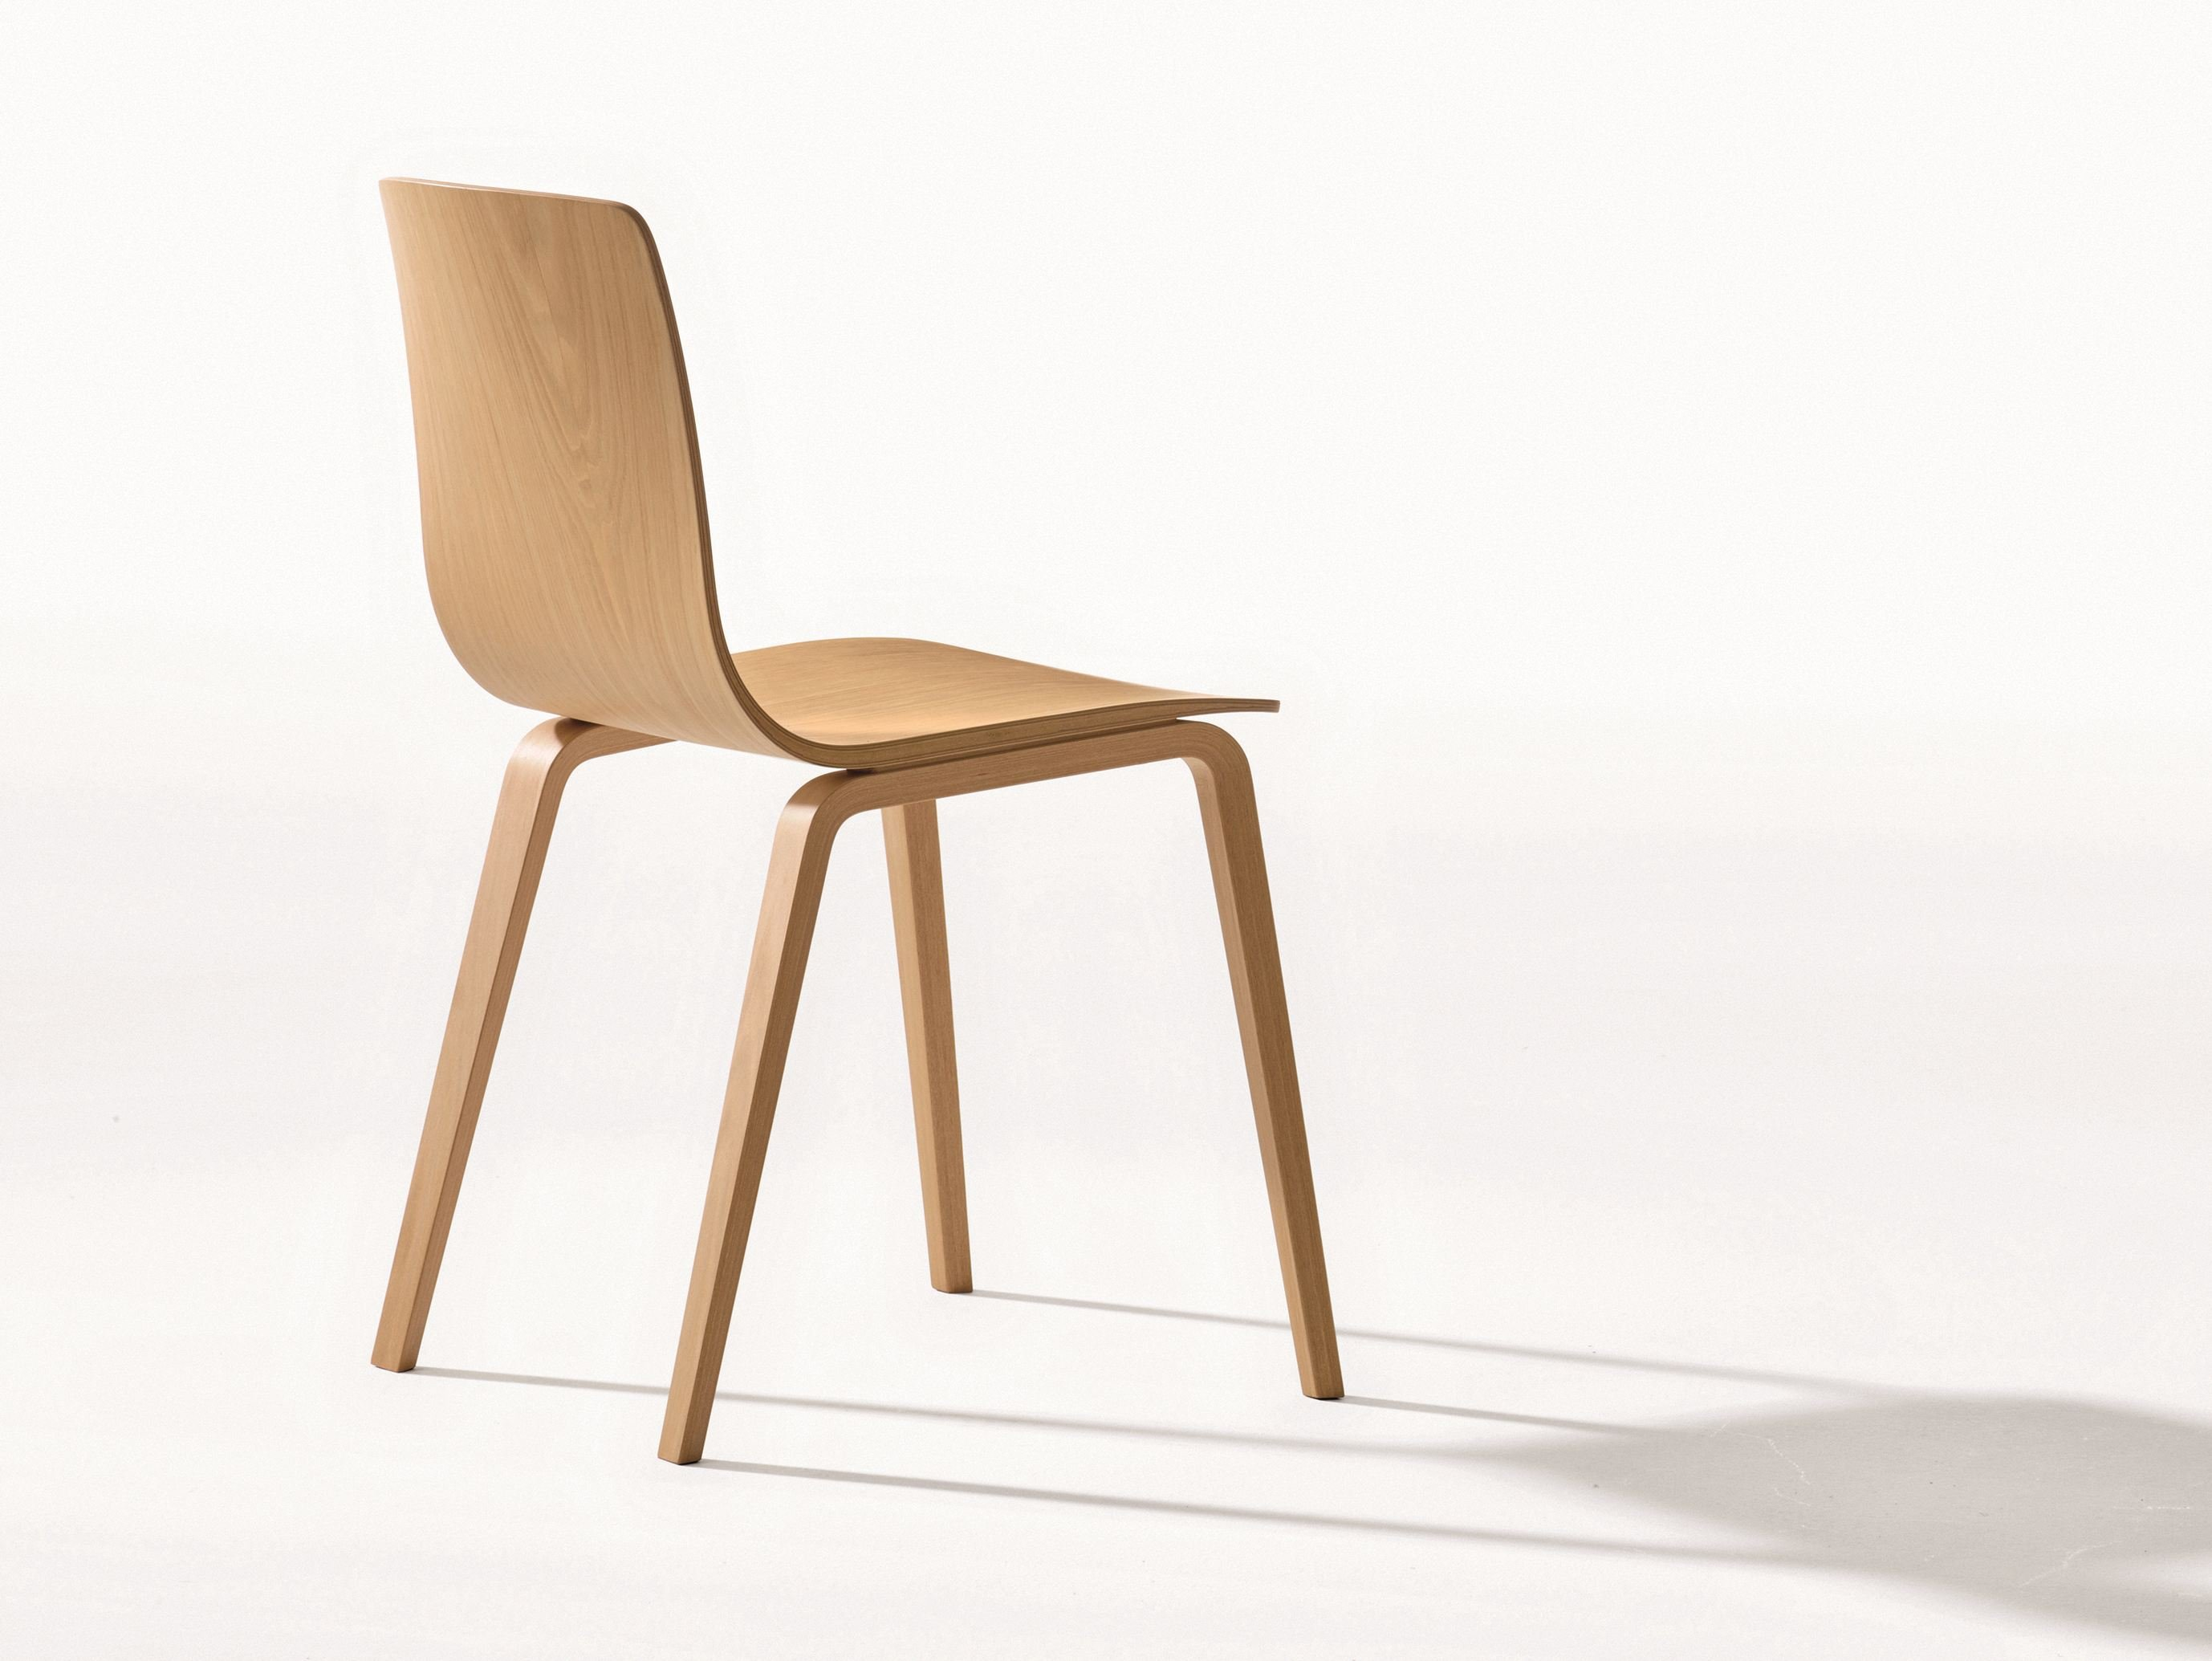 Chaise Bois Design - STACKABLE WOODEN CHAIR AAVA COLLECTION BY ARPER DESIGN ANTTI KOTILAINEN